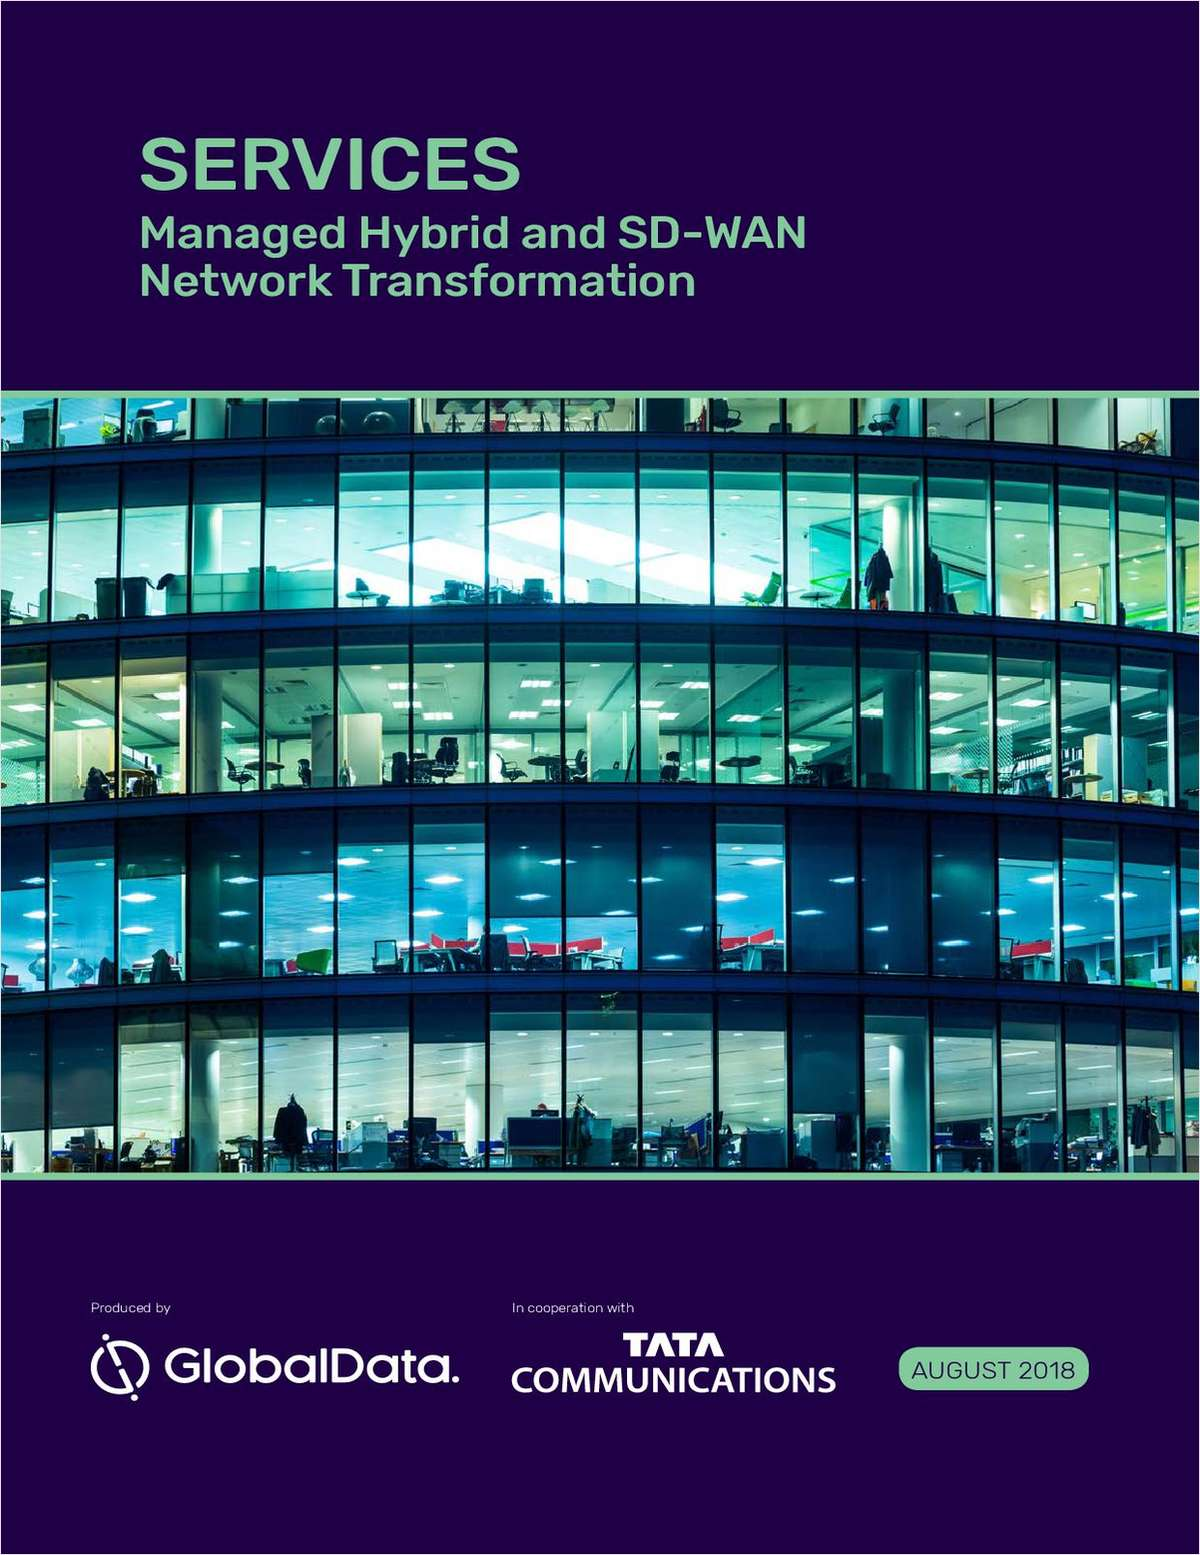 Managed Hybrid and SD-WAN Network